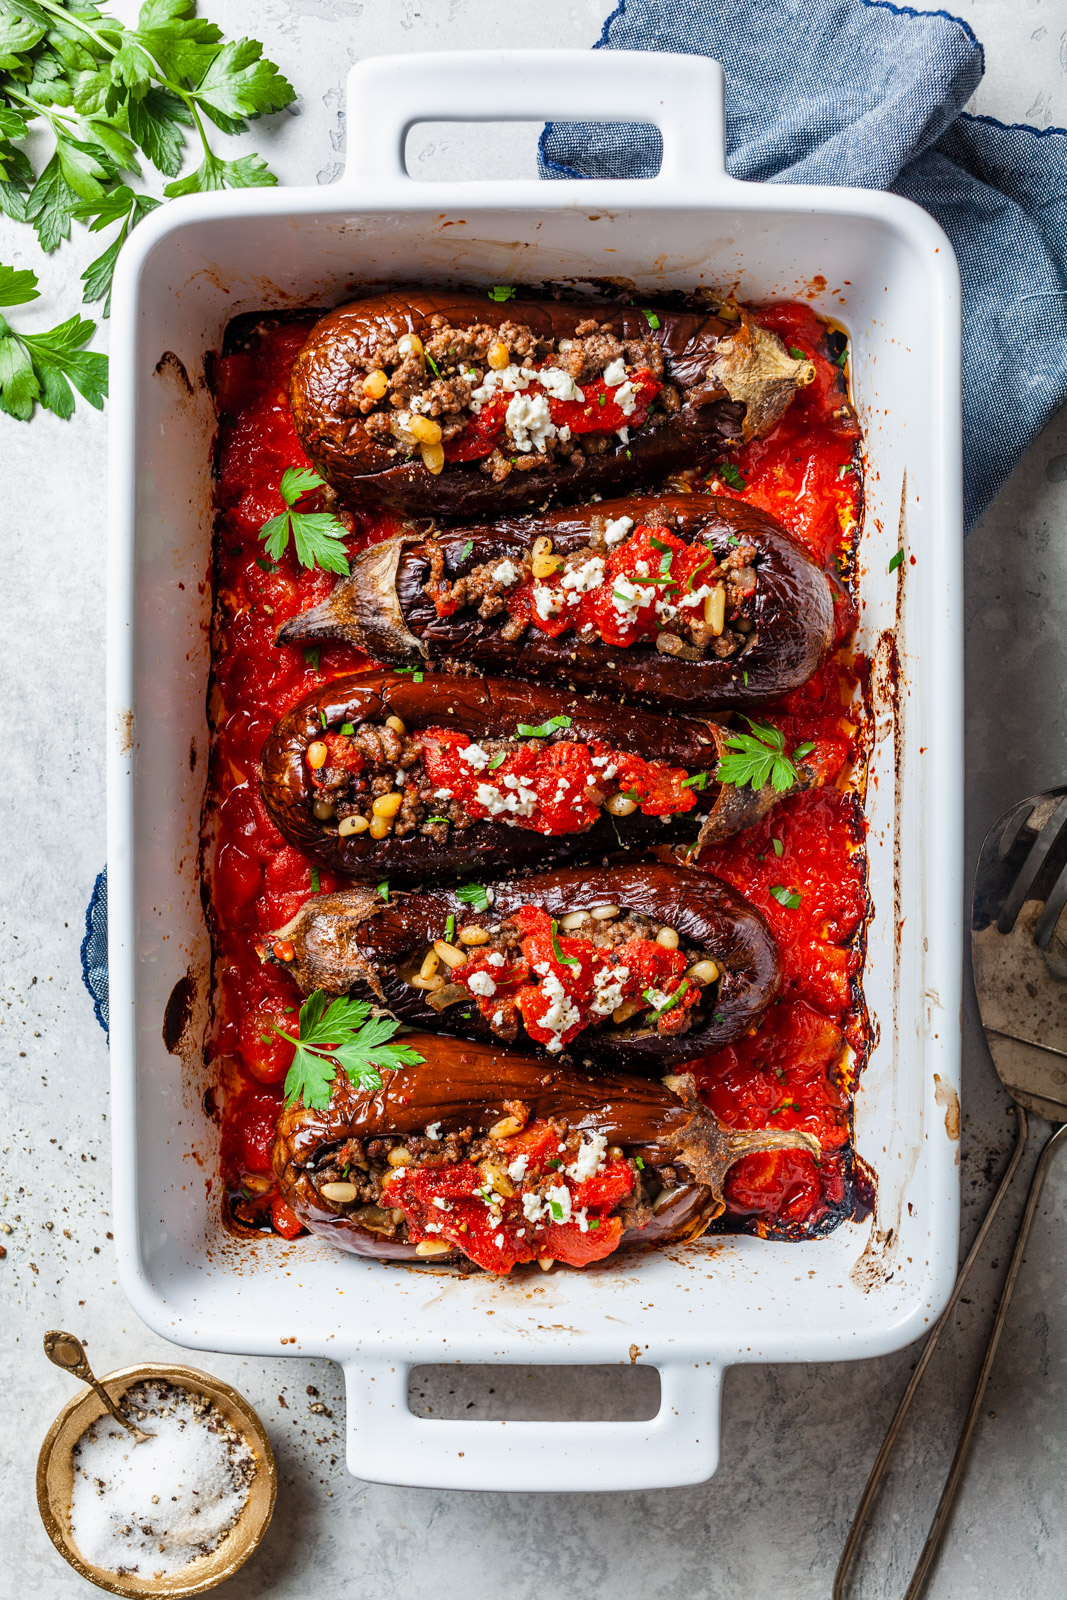 2019_06_21_middle_eastern_meat_stuffed_eggplant_2